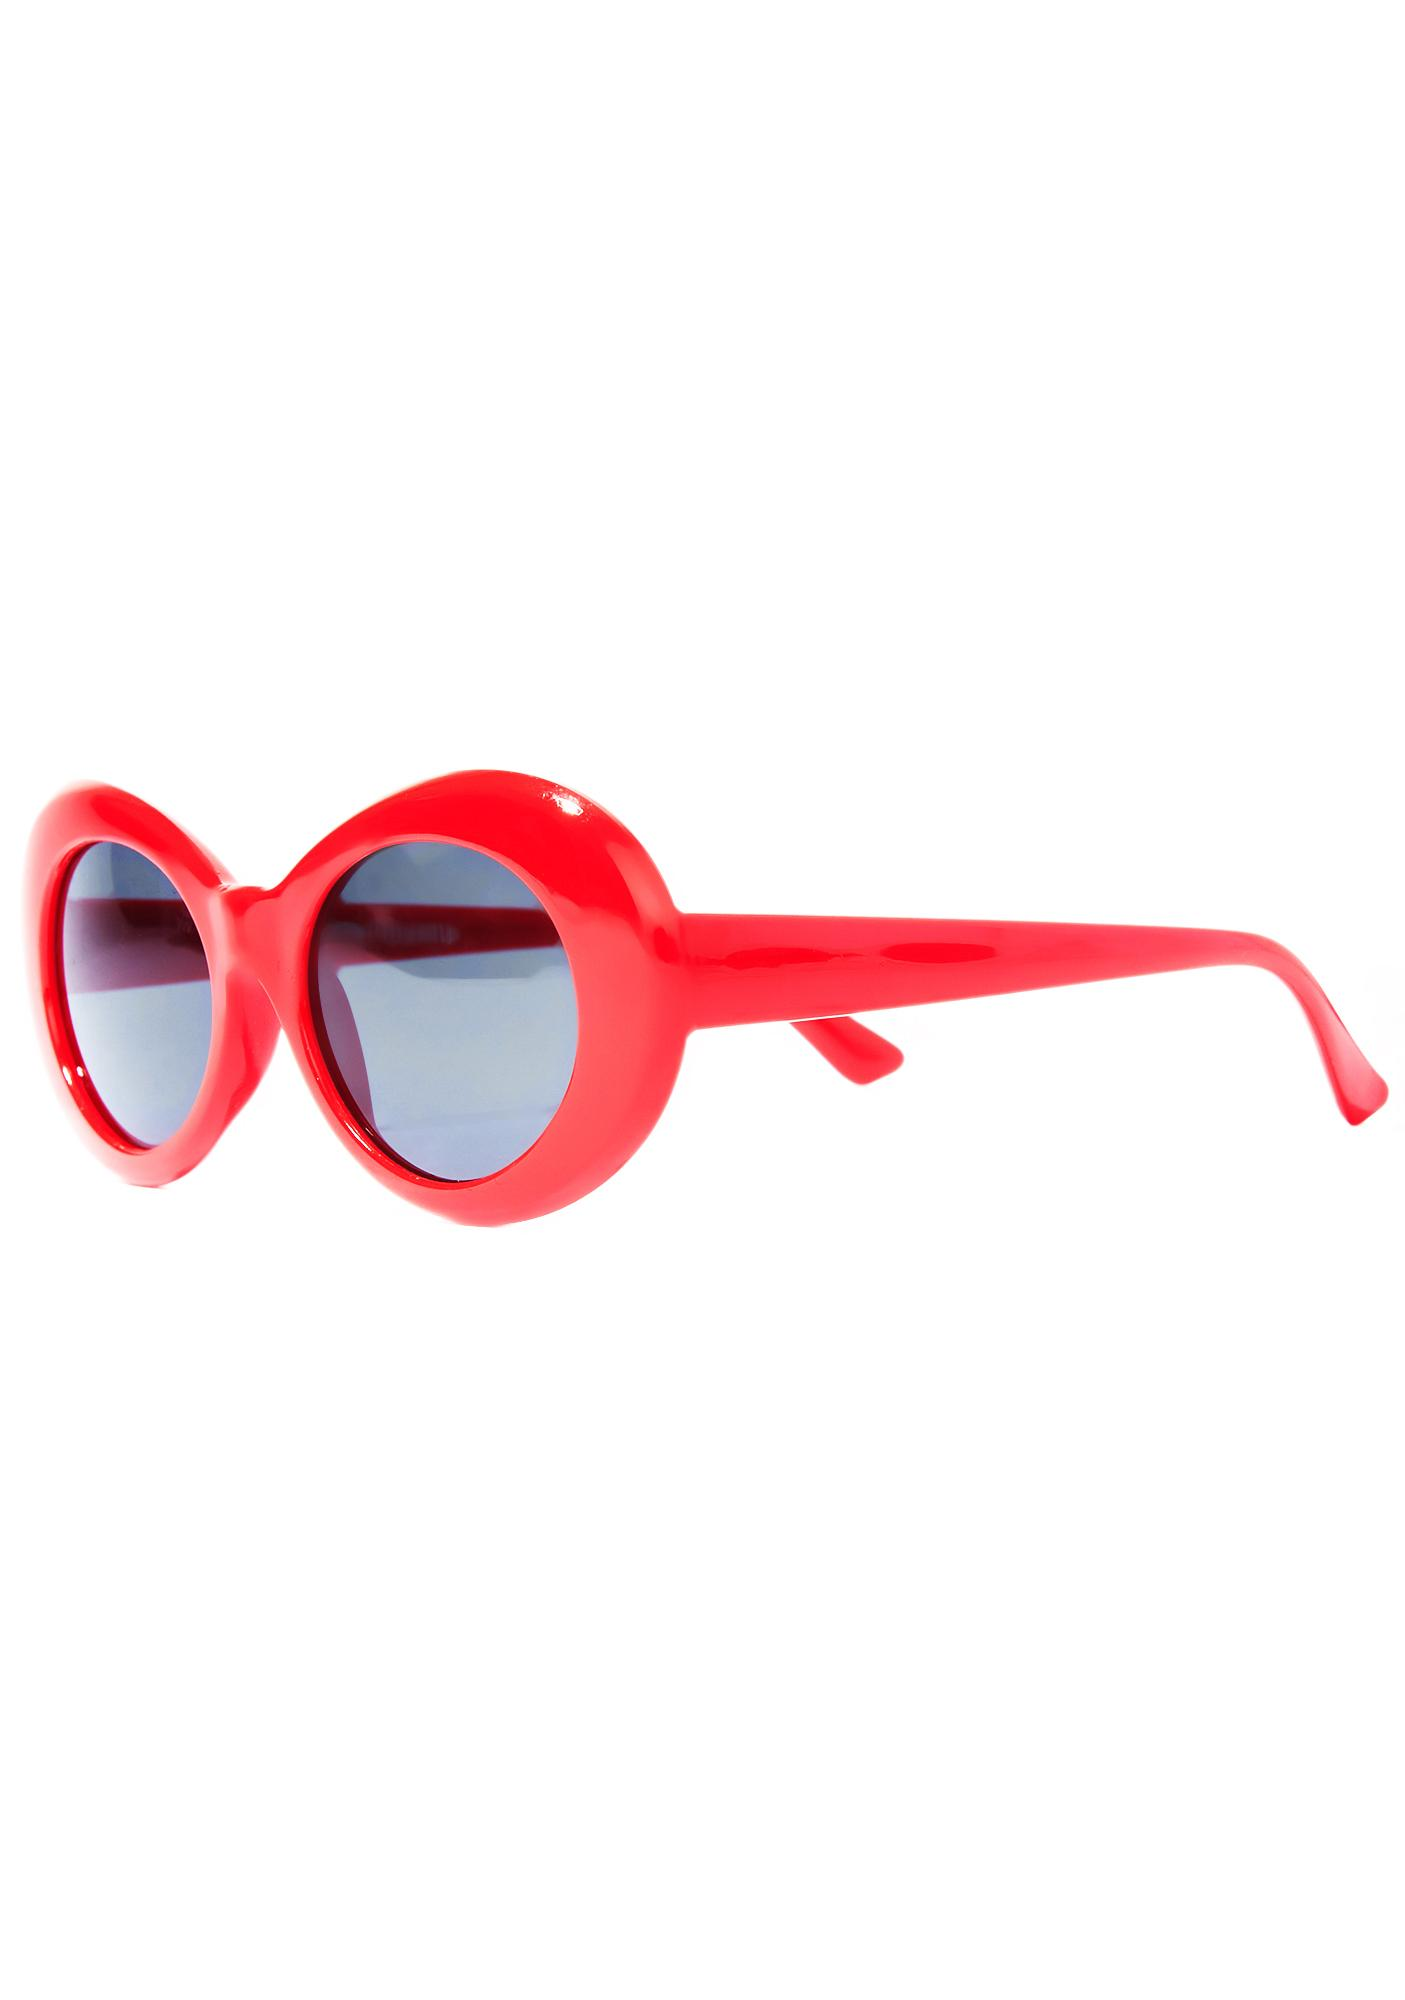 Petals and Peacocks Cherry Nevermind Sunglasses